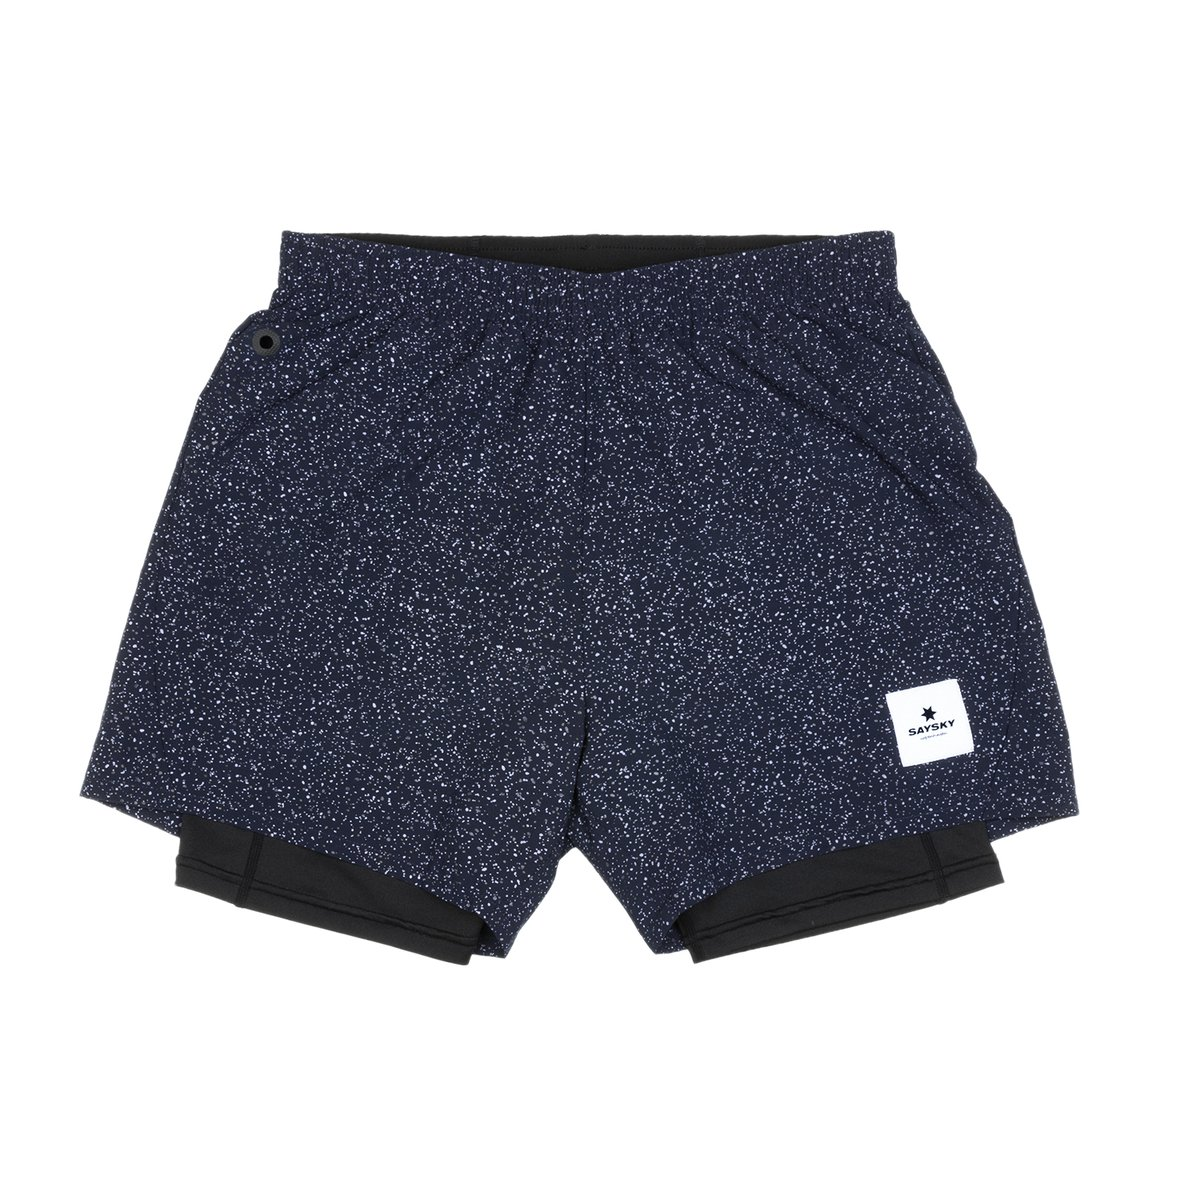 SaySky Universe 2-in-1 Shorts Herre